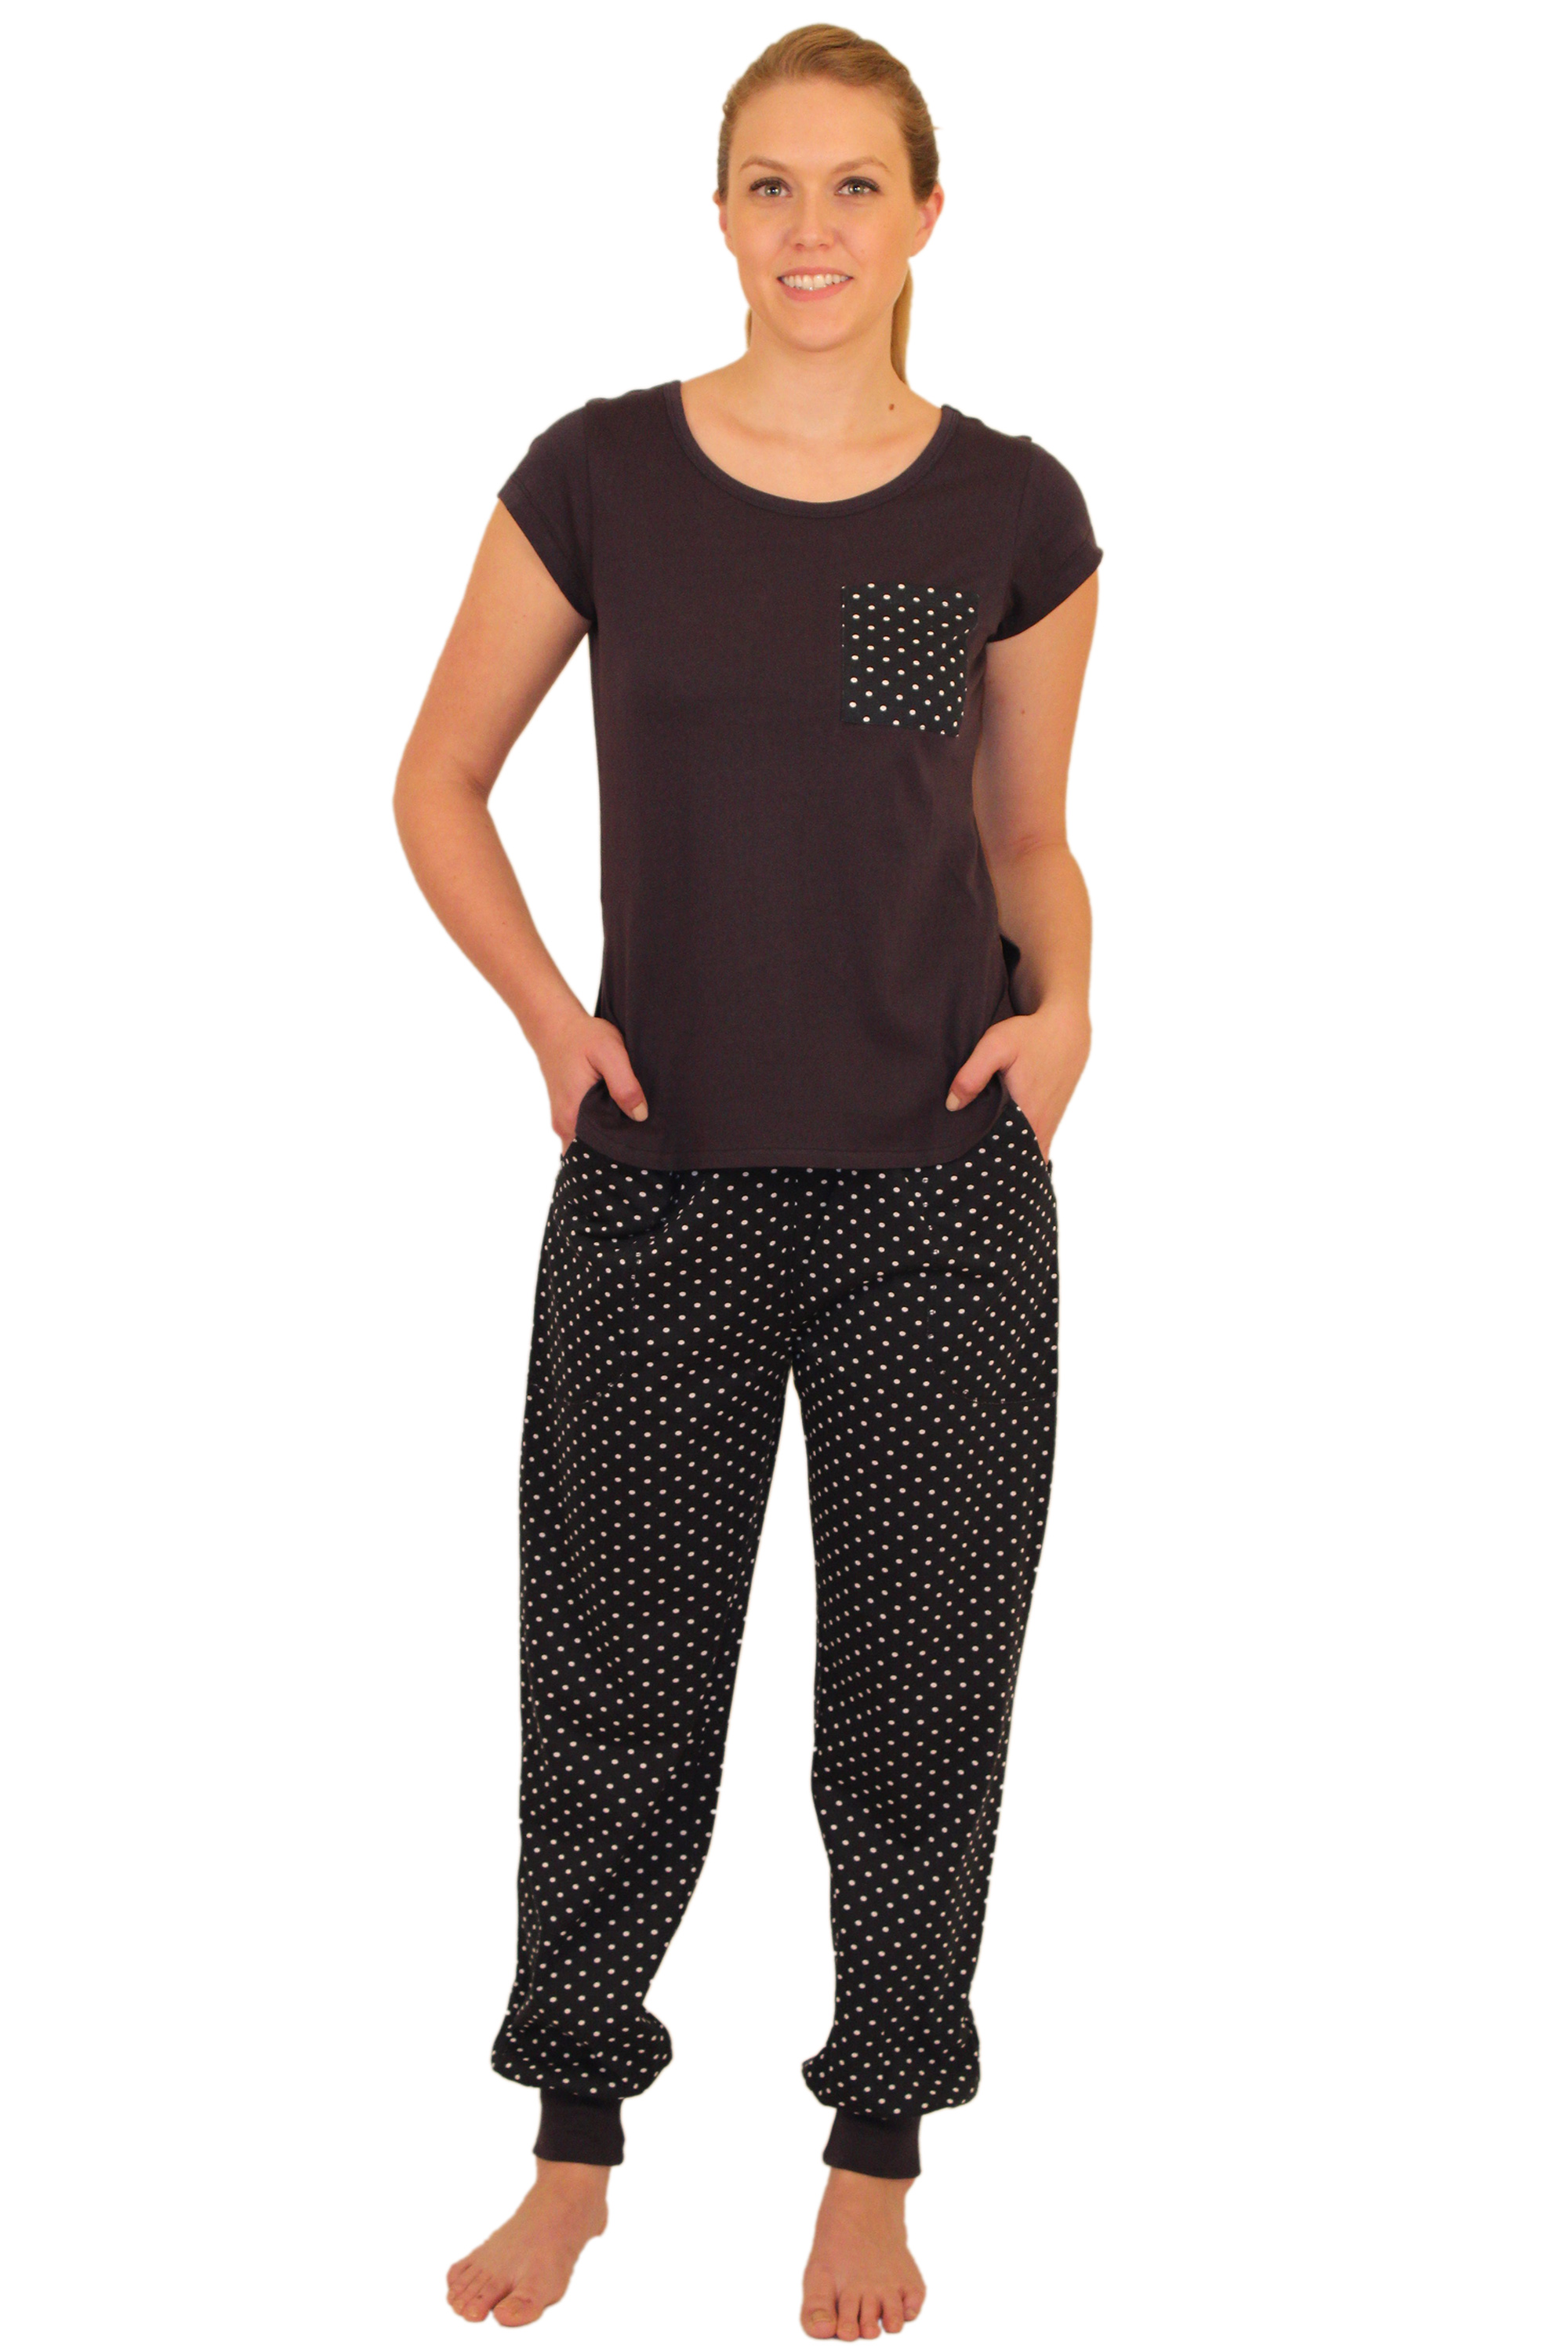 ApparelNY Stylish Knit Pajama Set with Stylish Tee-shirt and Cuffed Pants -$19.99 Colors: Floral Polkadots Solid. Sizes:  XS S M L XL ... ApparelNY Stylish Pajama sent. Cotton and Spandex blend. This stylish pajama set is perfect outfit fo